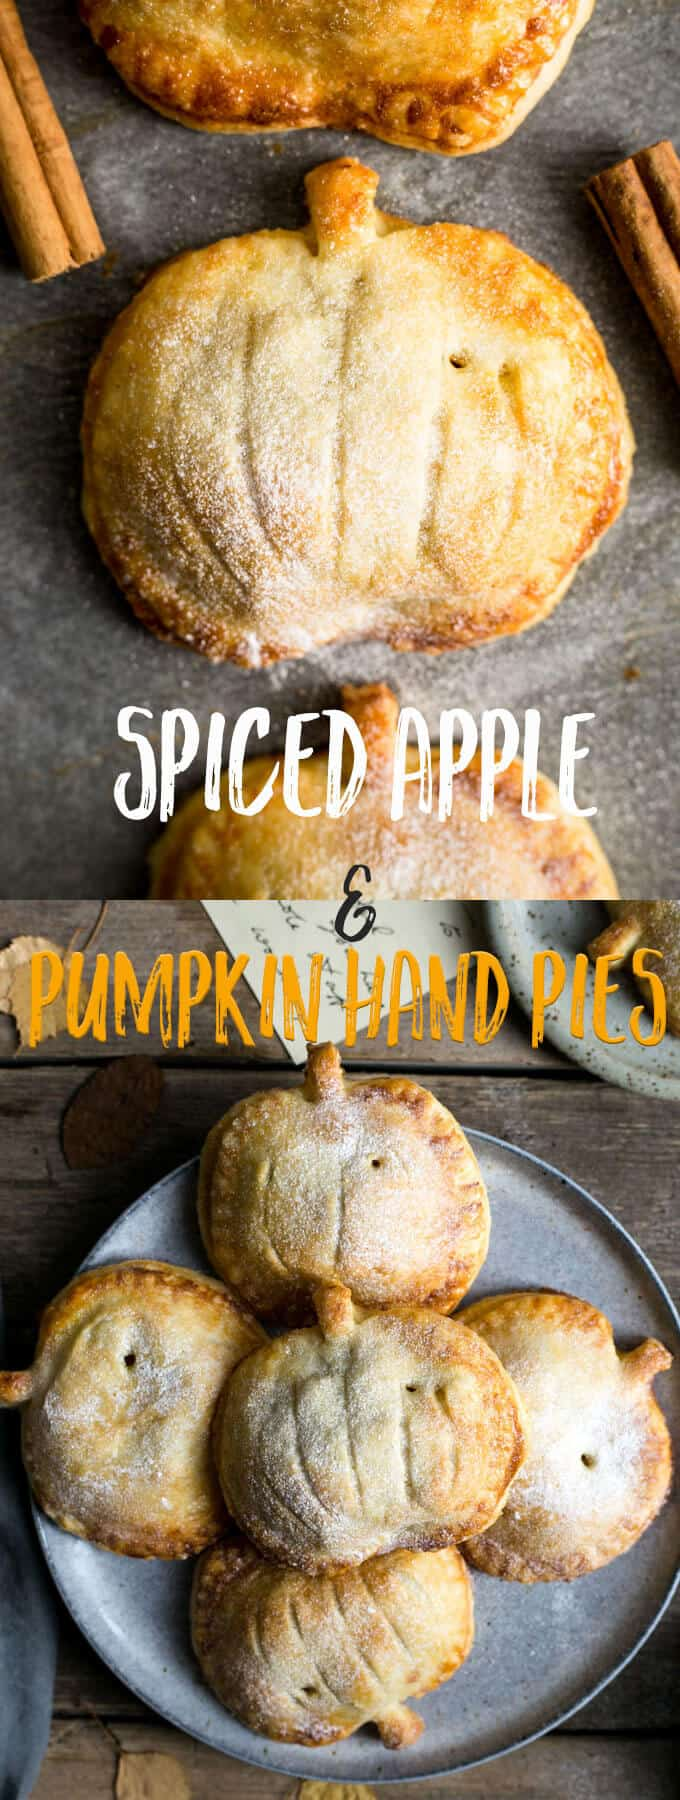 Spiced apple and pumpkin hand pies recipe #vegan #pie | via @annabanana.co